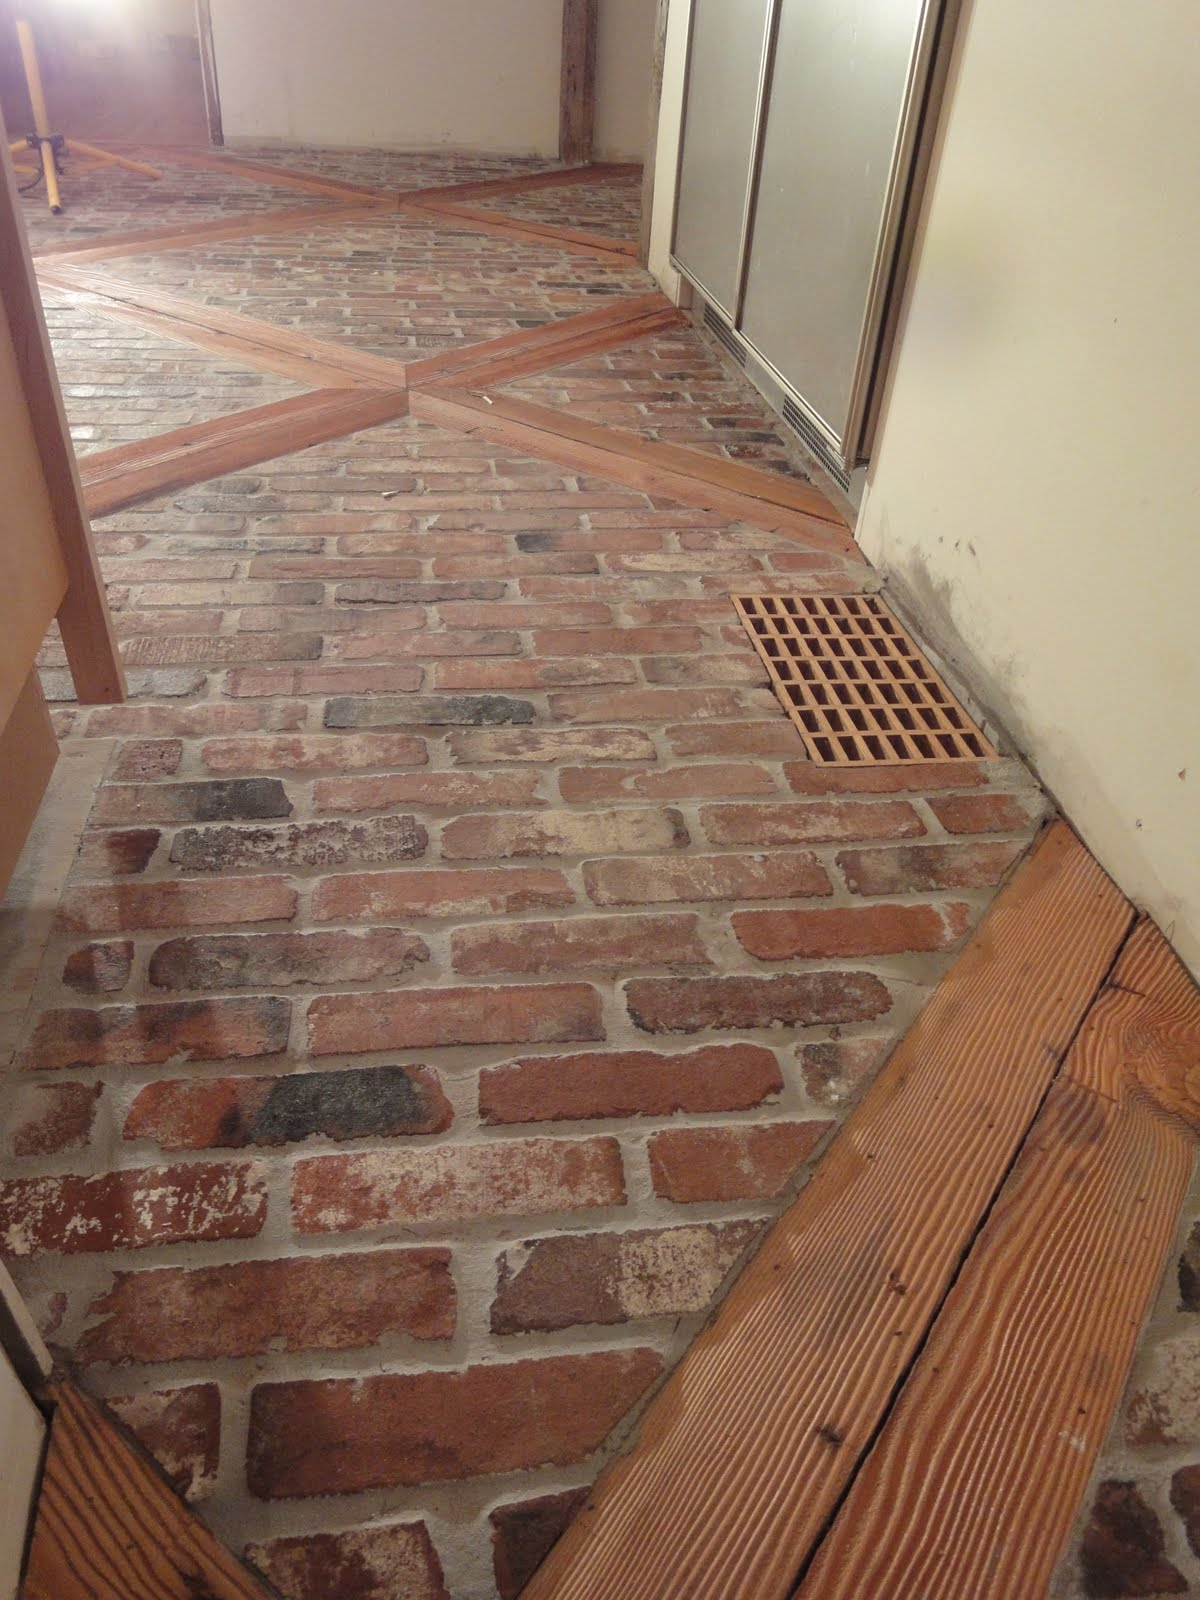 Farmhouse Brick Flooring Tile : Farmhouse kitchen floor